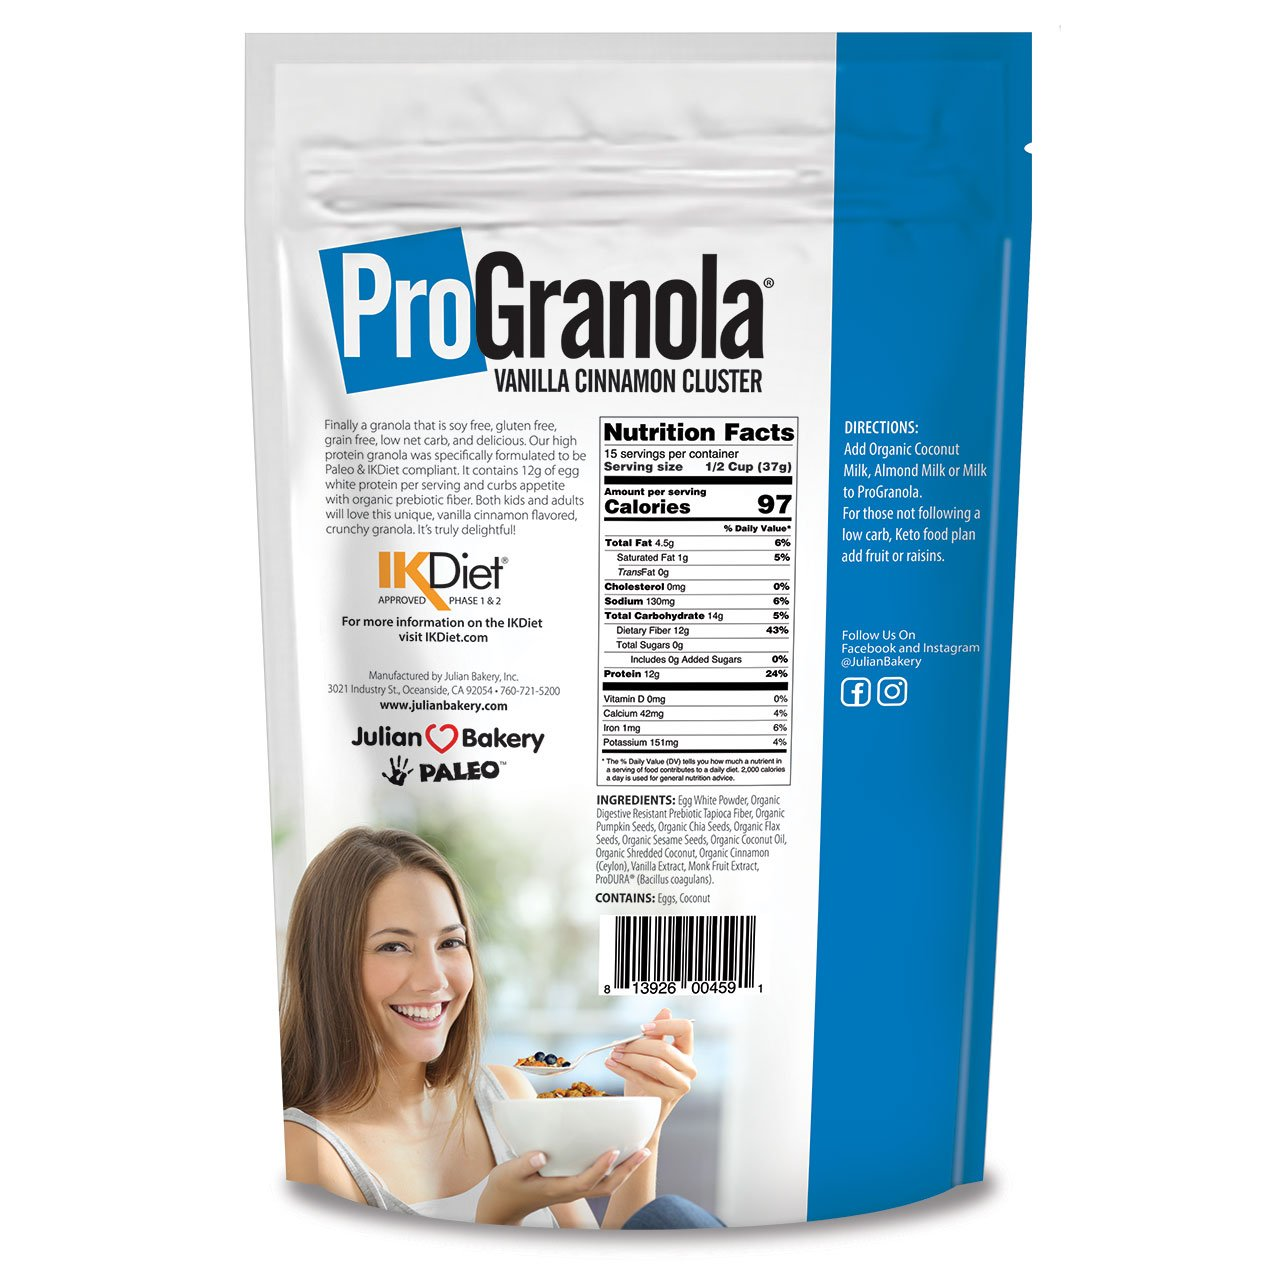 ProGranola 12g Protein Cereal Vanilla Cinn (Paleo : Low Net Carb : Gluten Free : Grain Free) (6 Pack) by Julian Bakery (Image #4)